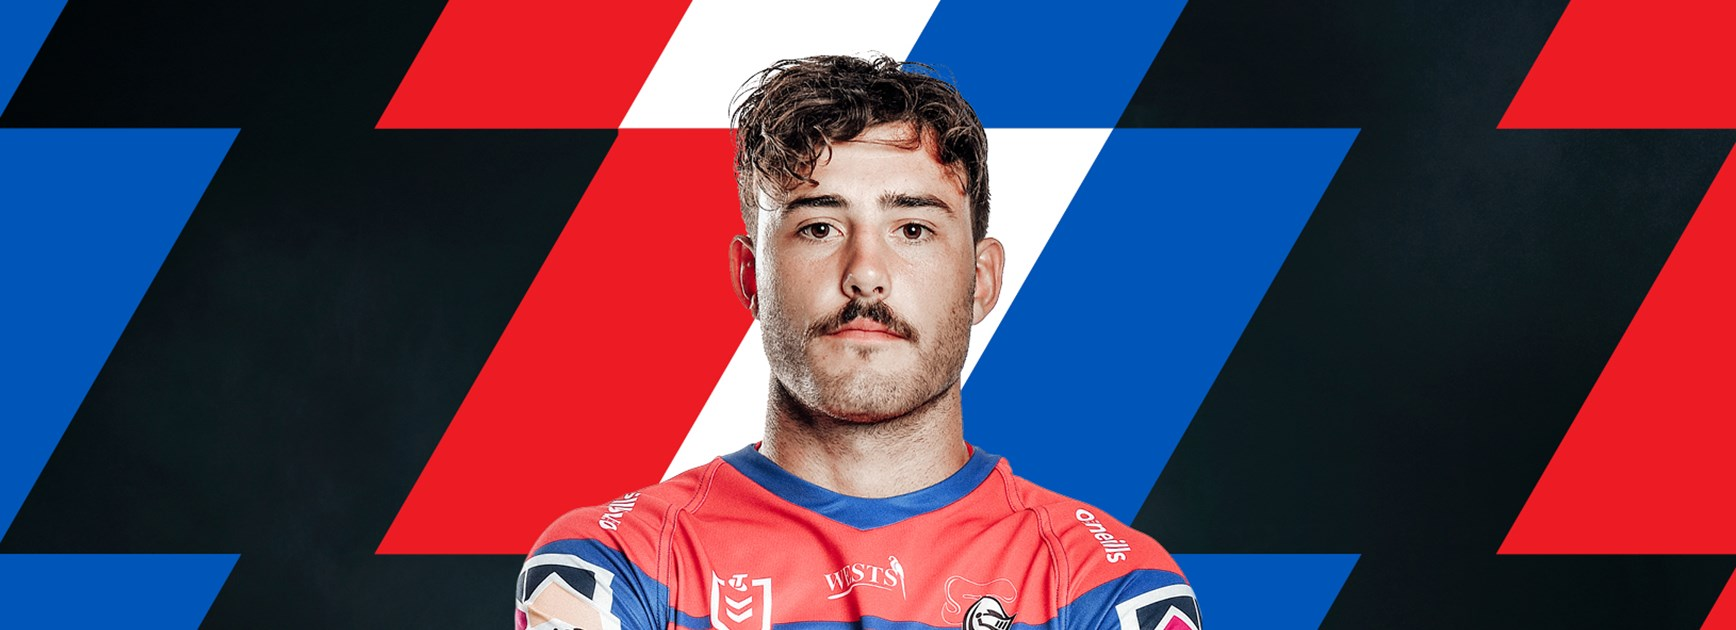 Brayden Musgrove returns to NRL squad